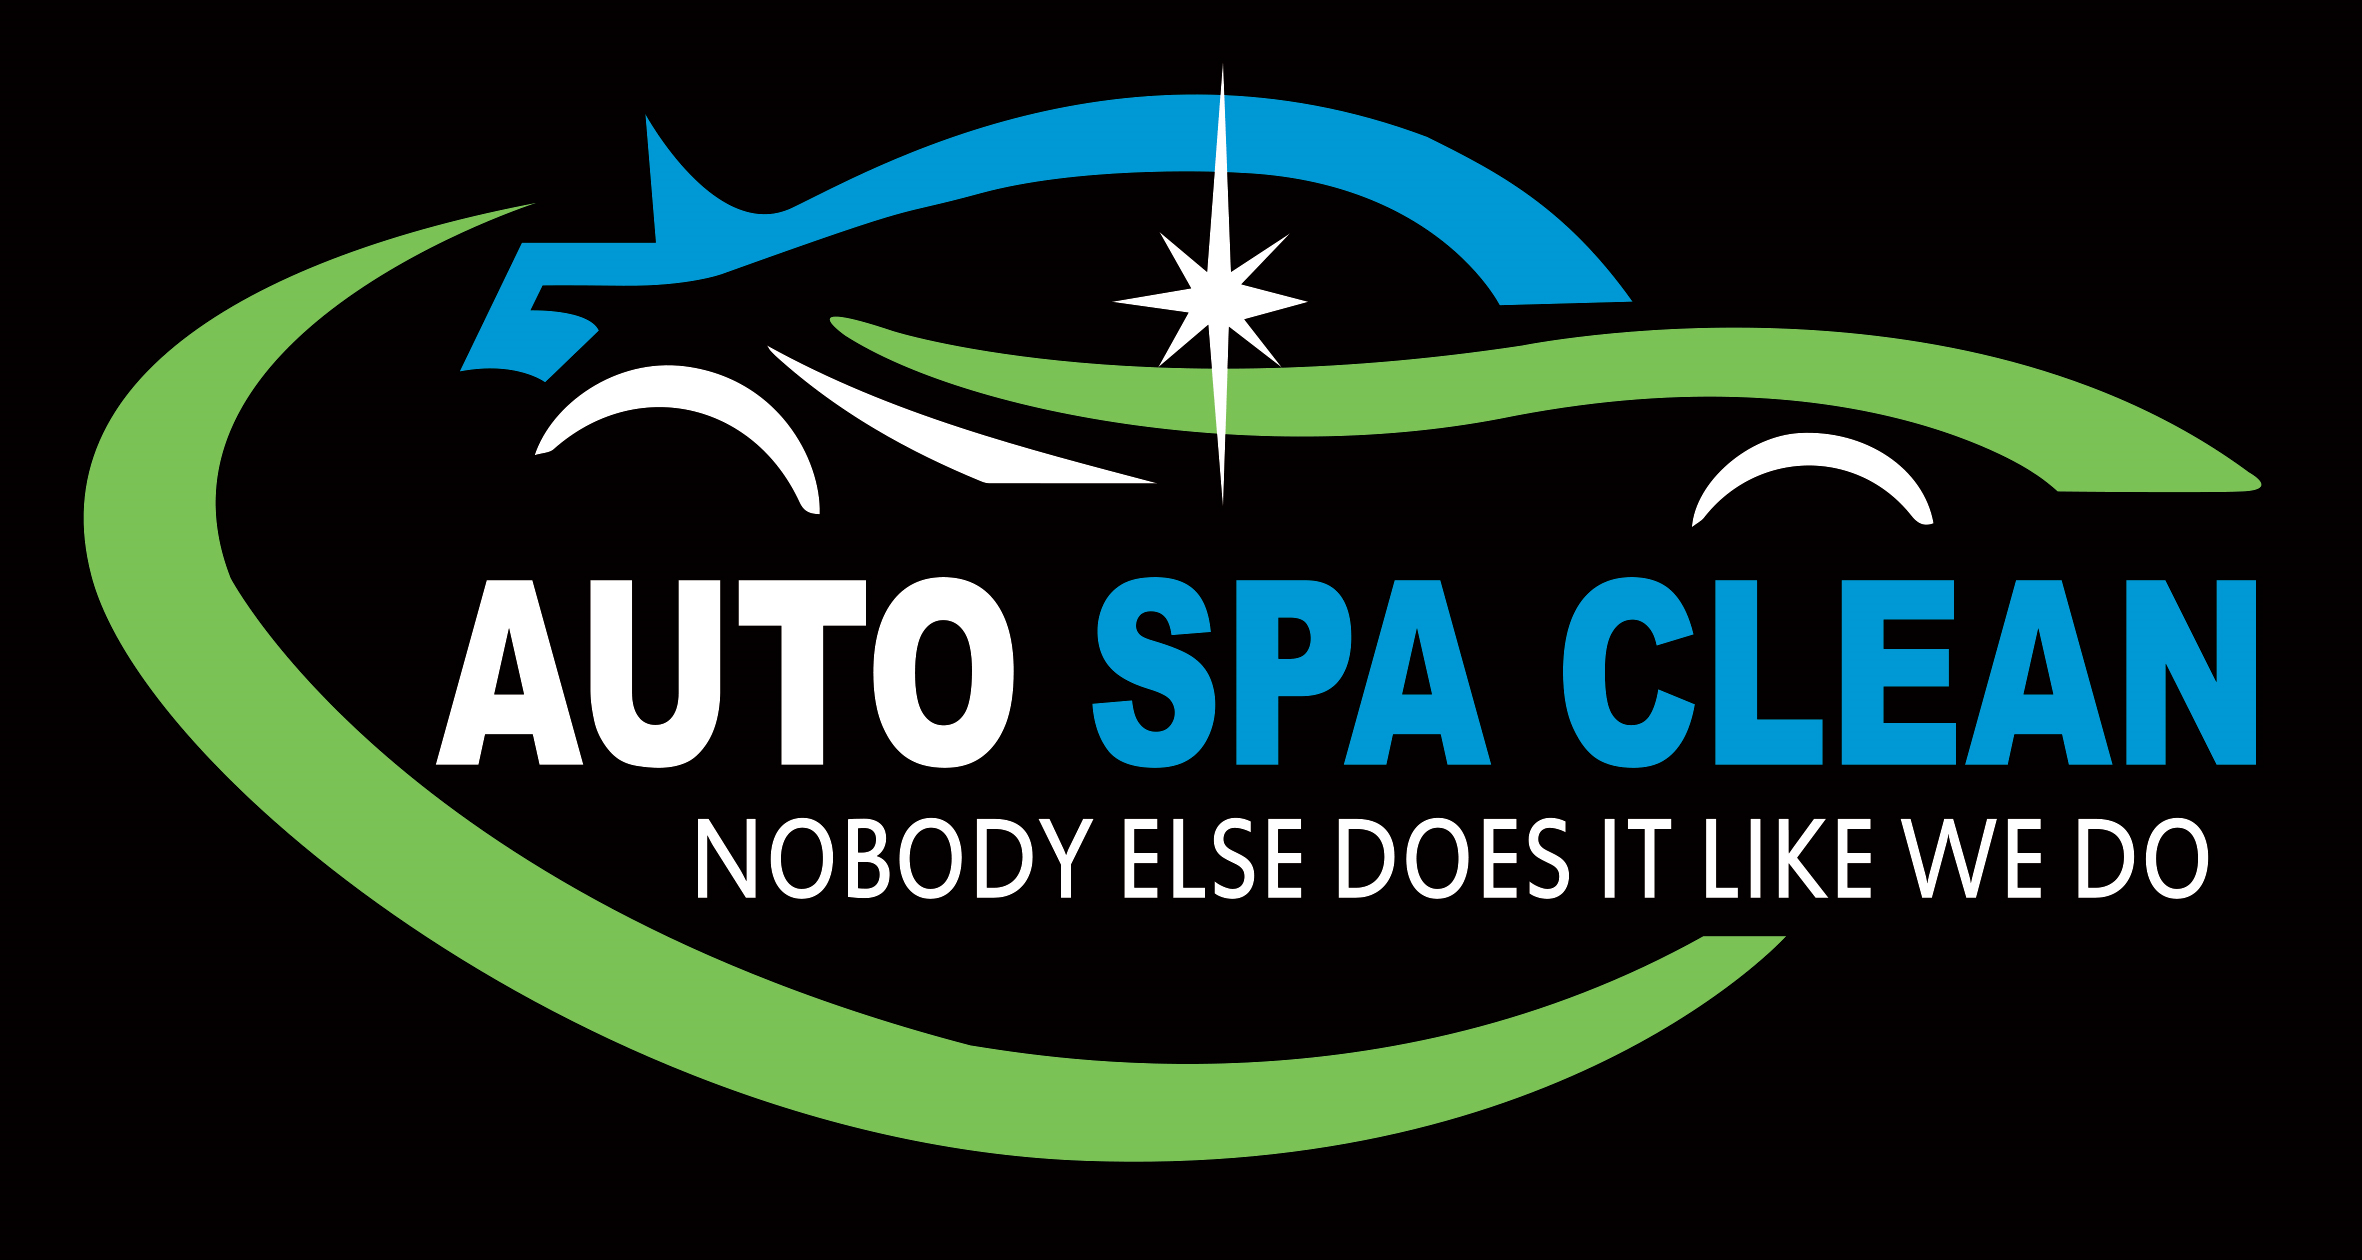 Auto Spa Clean Logo